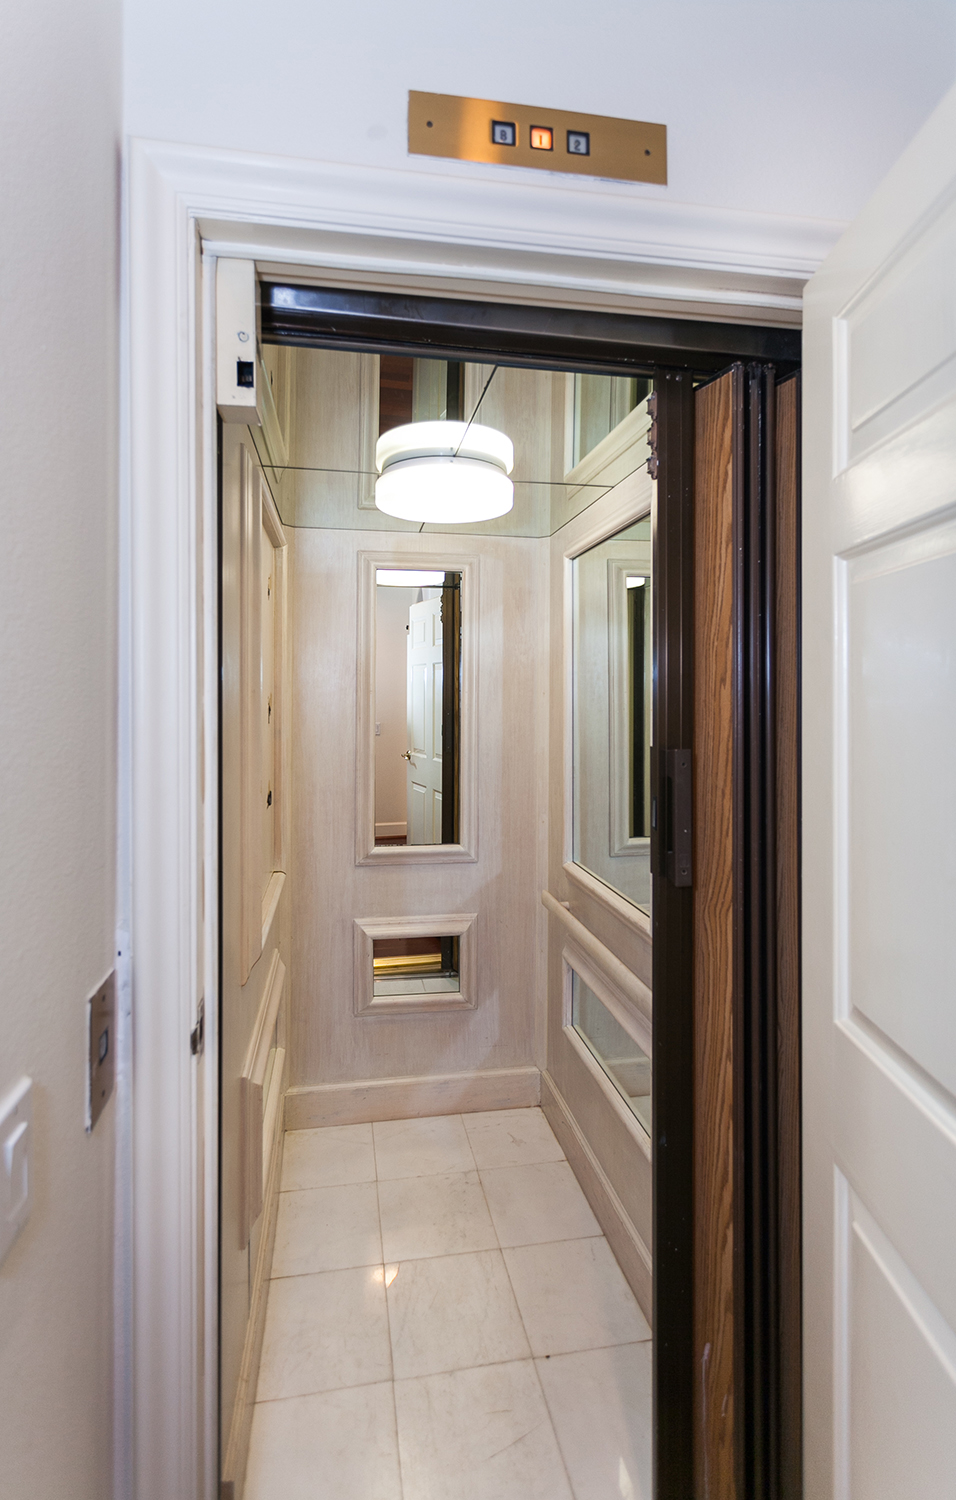 A fancy elevator to maneuver the 3 story home.